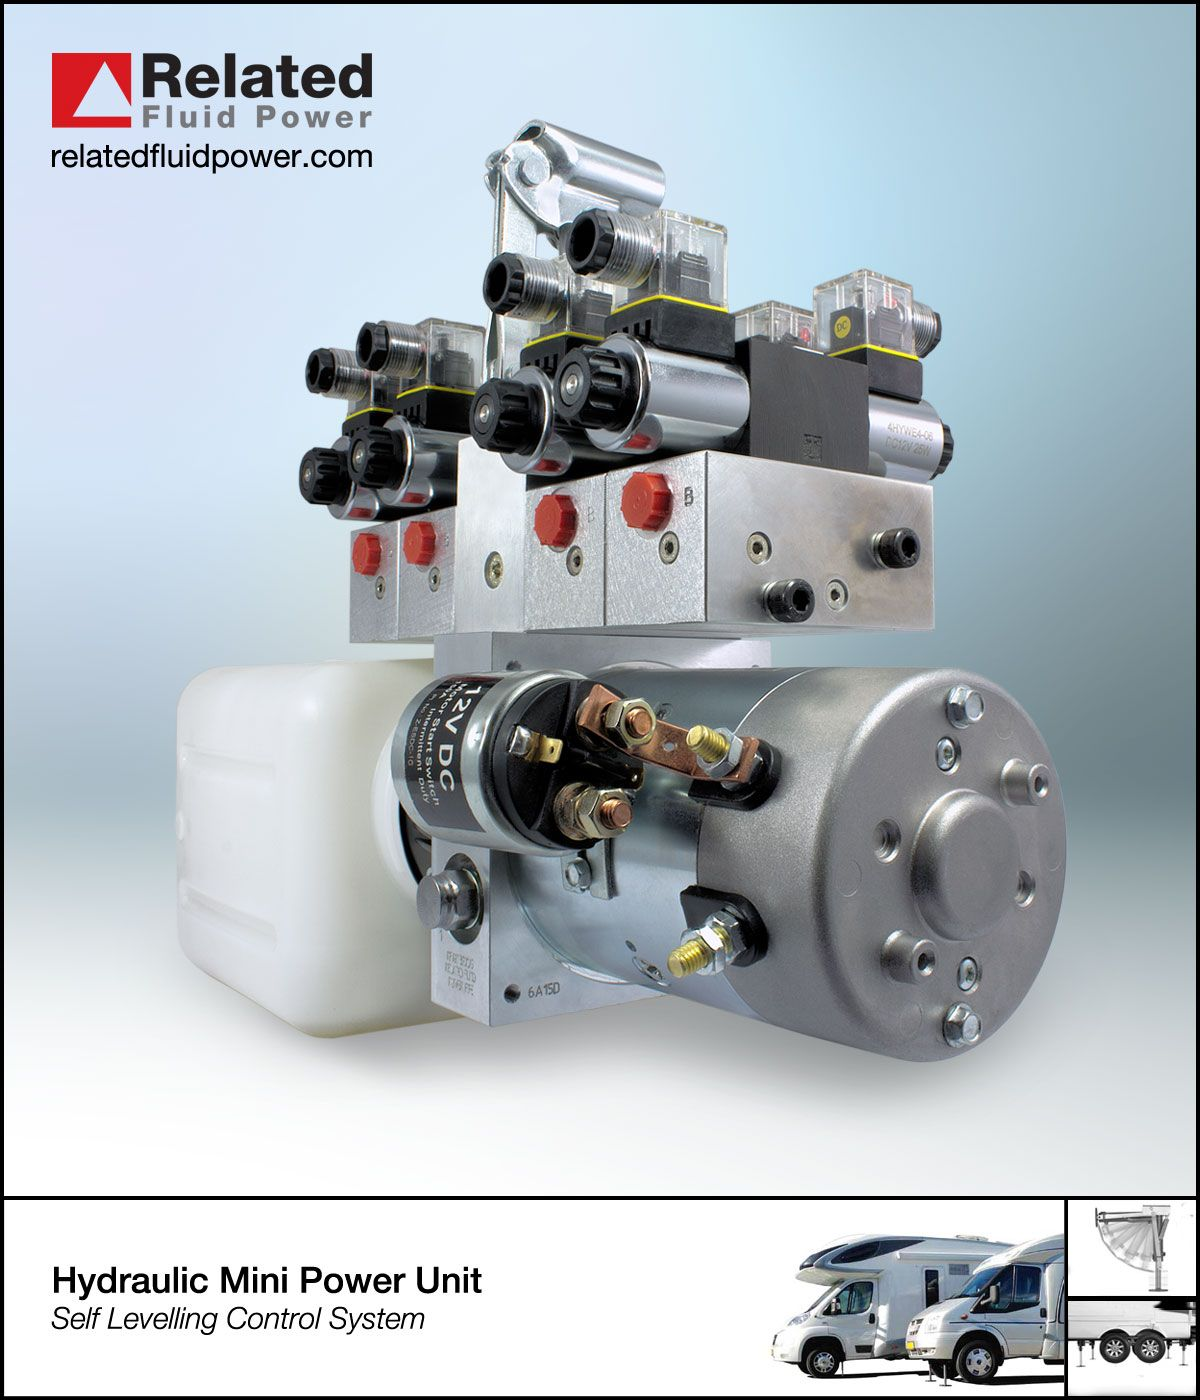 Hydraulic Mini Power Unit Used To Control The Self Levelling System On Motorhomes And Commercial Vehicles Hydraulic The Unit Commercial Vehicle